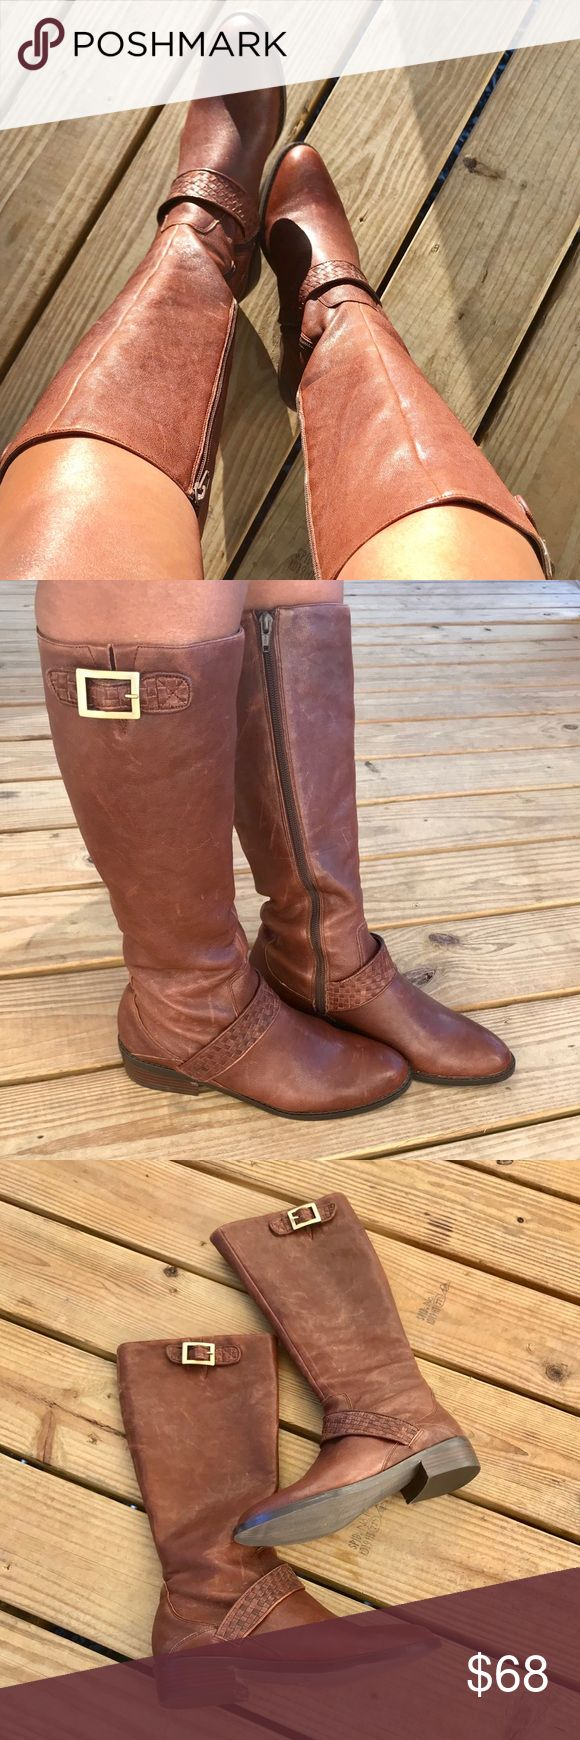 Jessica Simpson Rider Boots!! Brown leather rider boots with front weaving detail. Has some distressing to leather that adds lots of character!! Soles are like new! Side zip. 10 inch shaft. 1 inch heel. 7.5 inch calve opening. Jessica Simpson Shoes